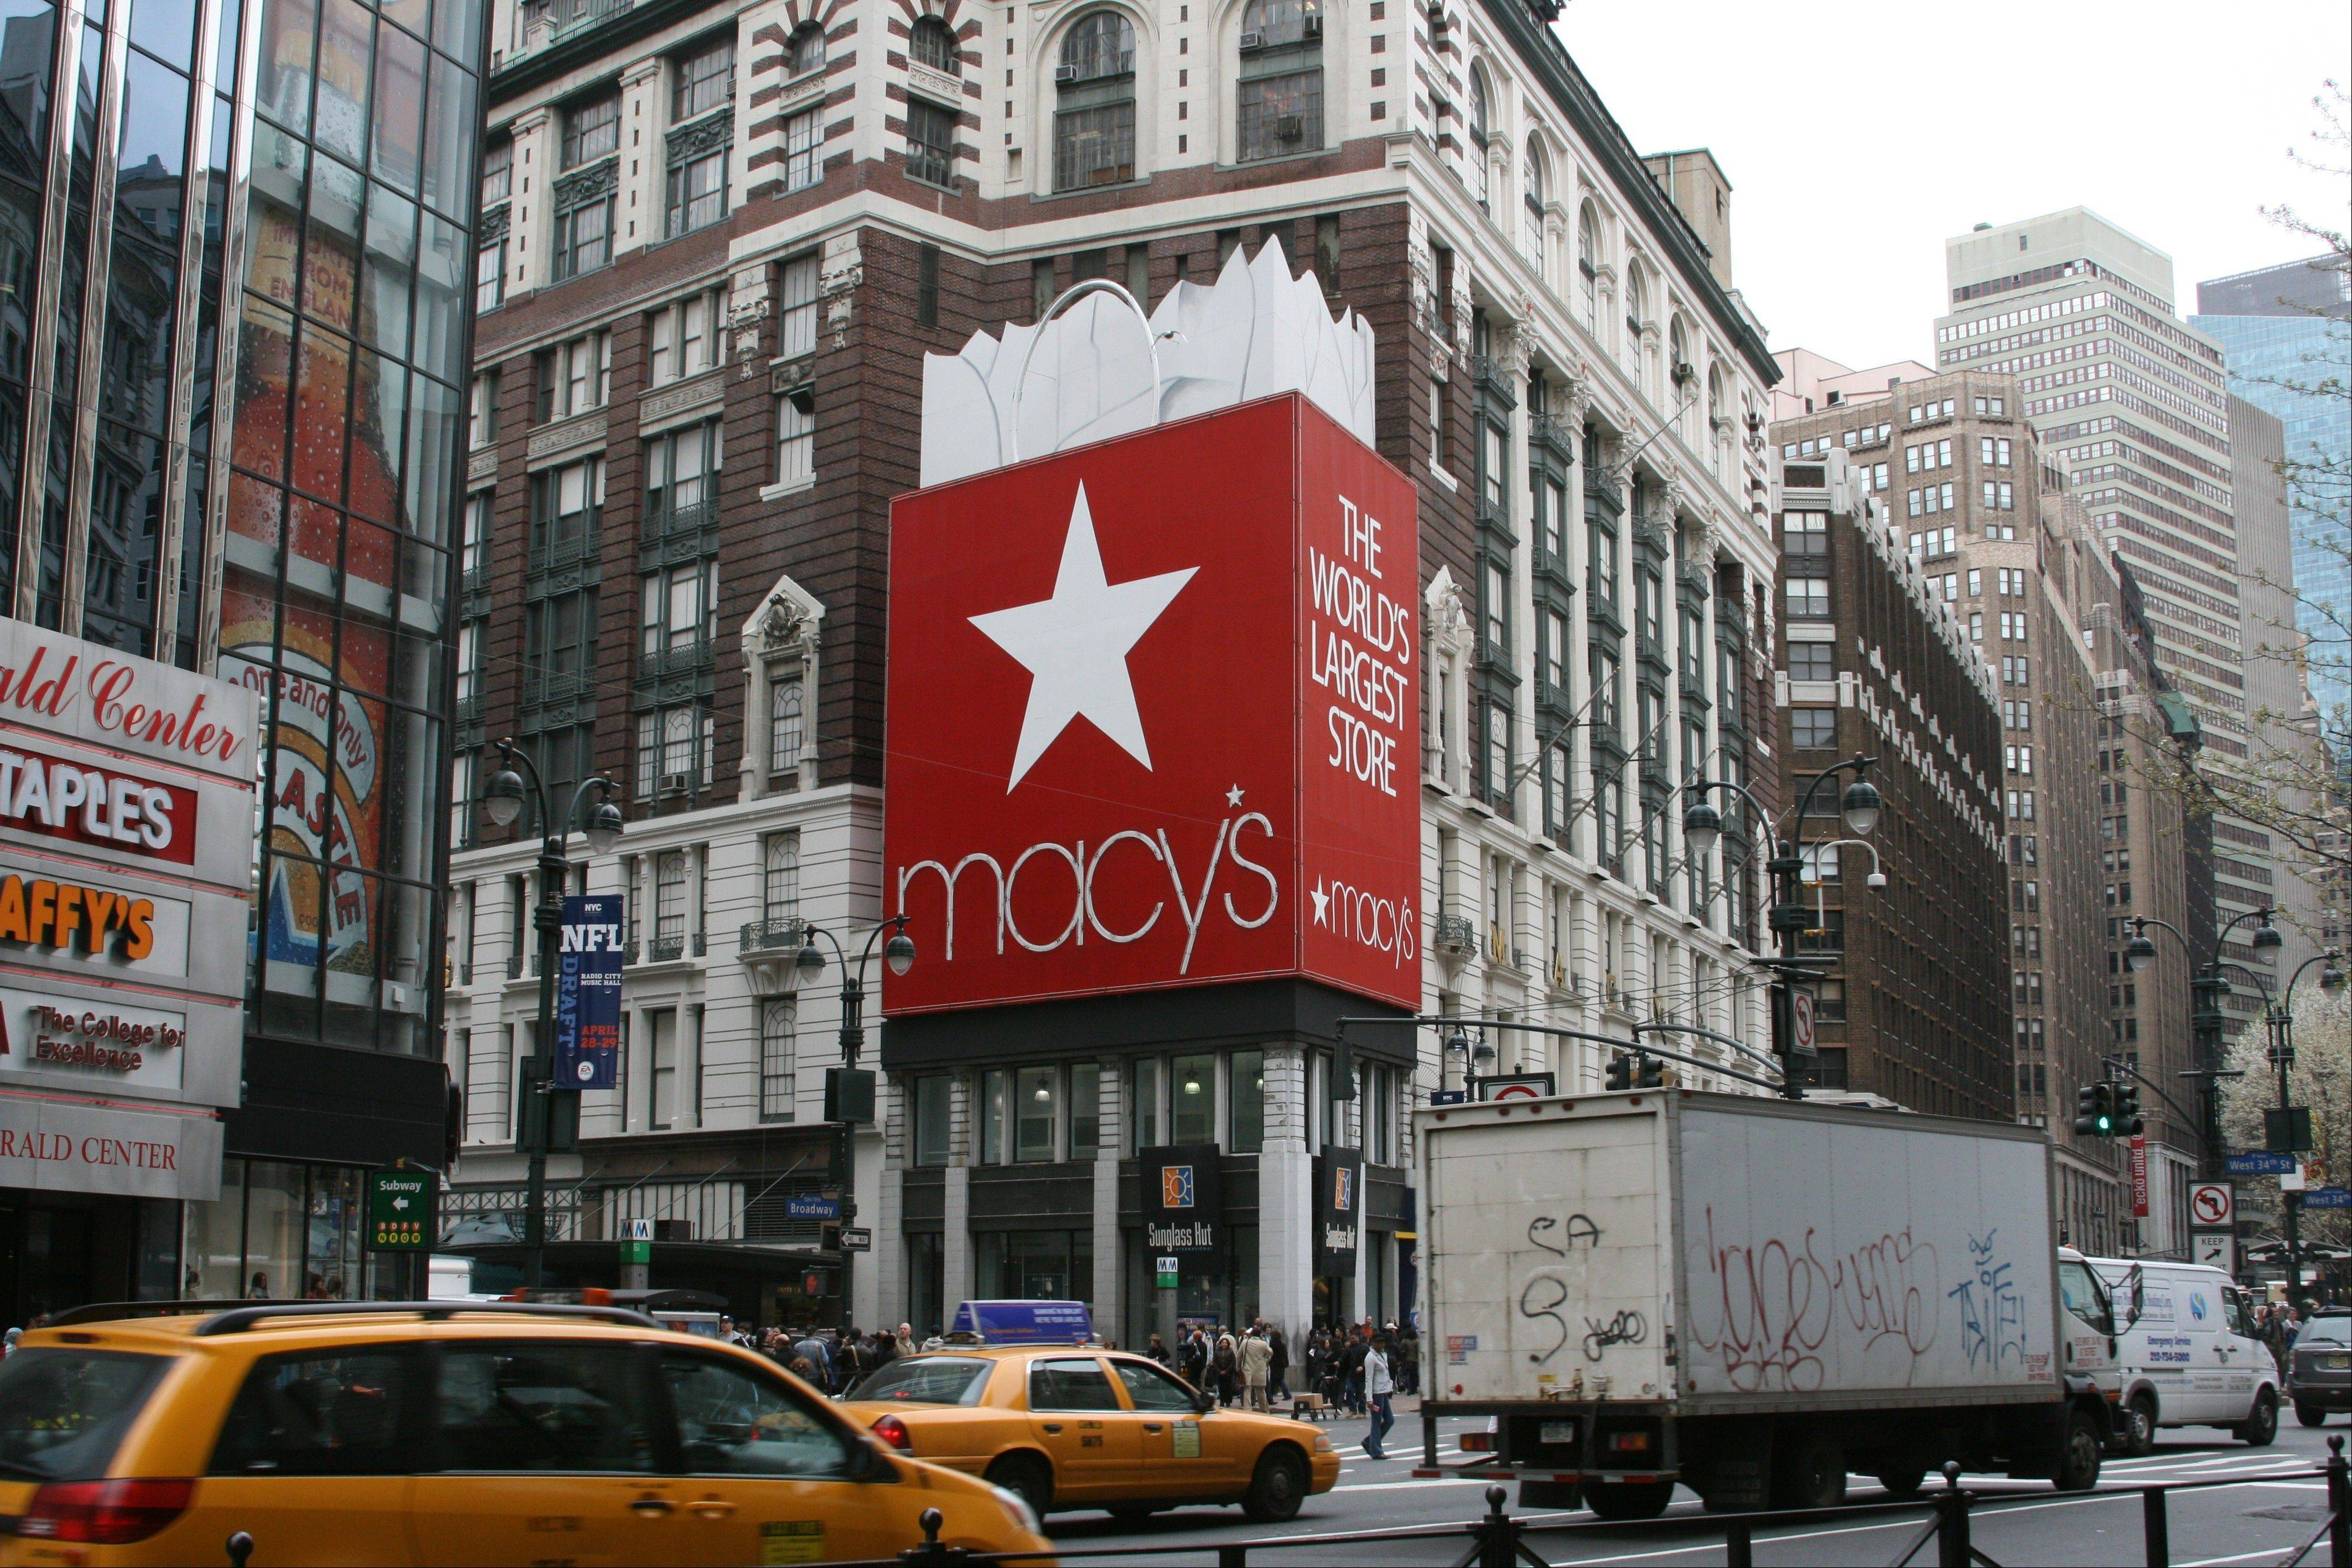 A $400 million makeover is giving New York's iconic Macy's store a sleek, new 21st-century style.